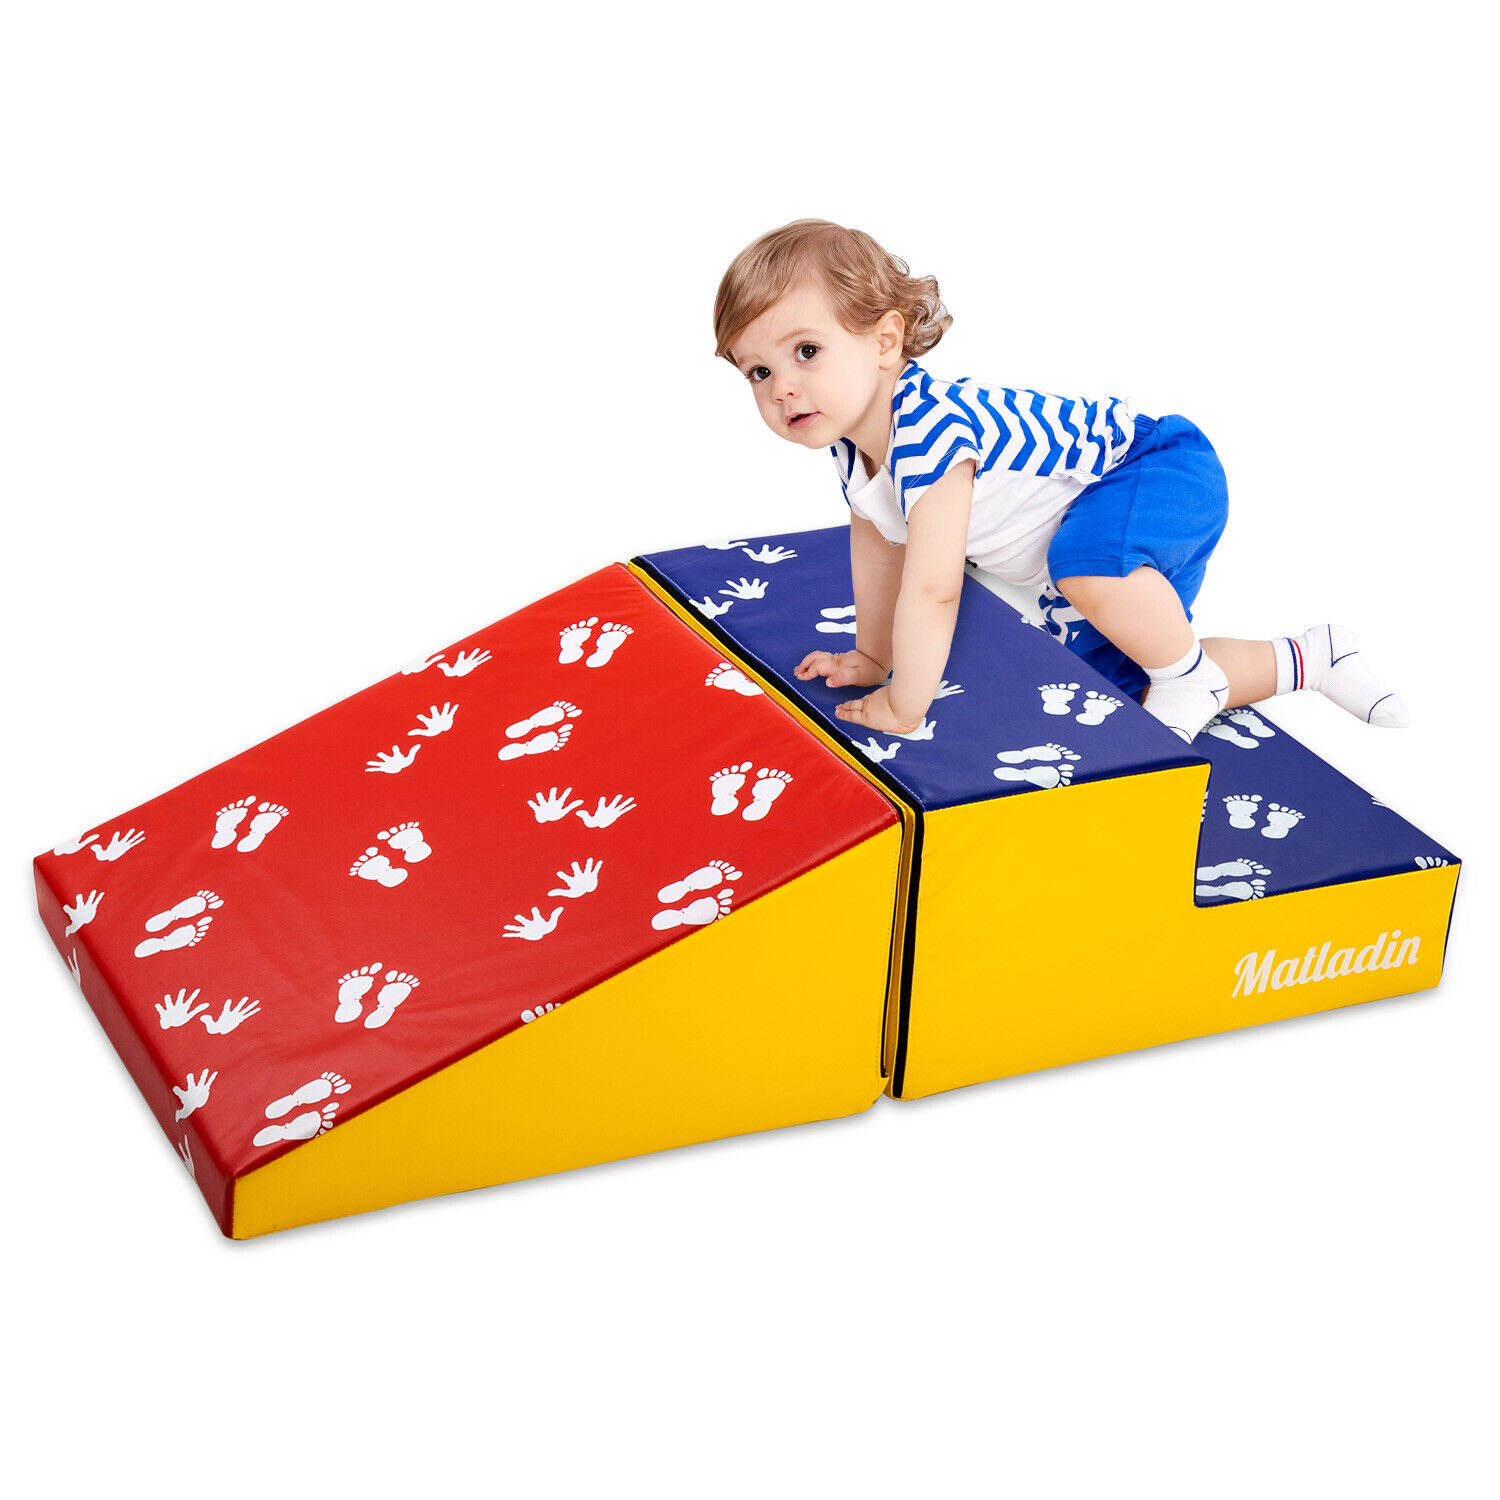 Indoor Beginner Toddler Climber with Slide Stairs Soft Foam